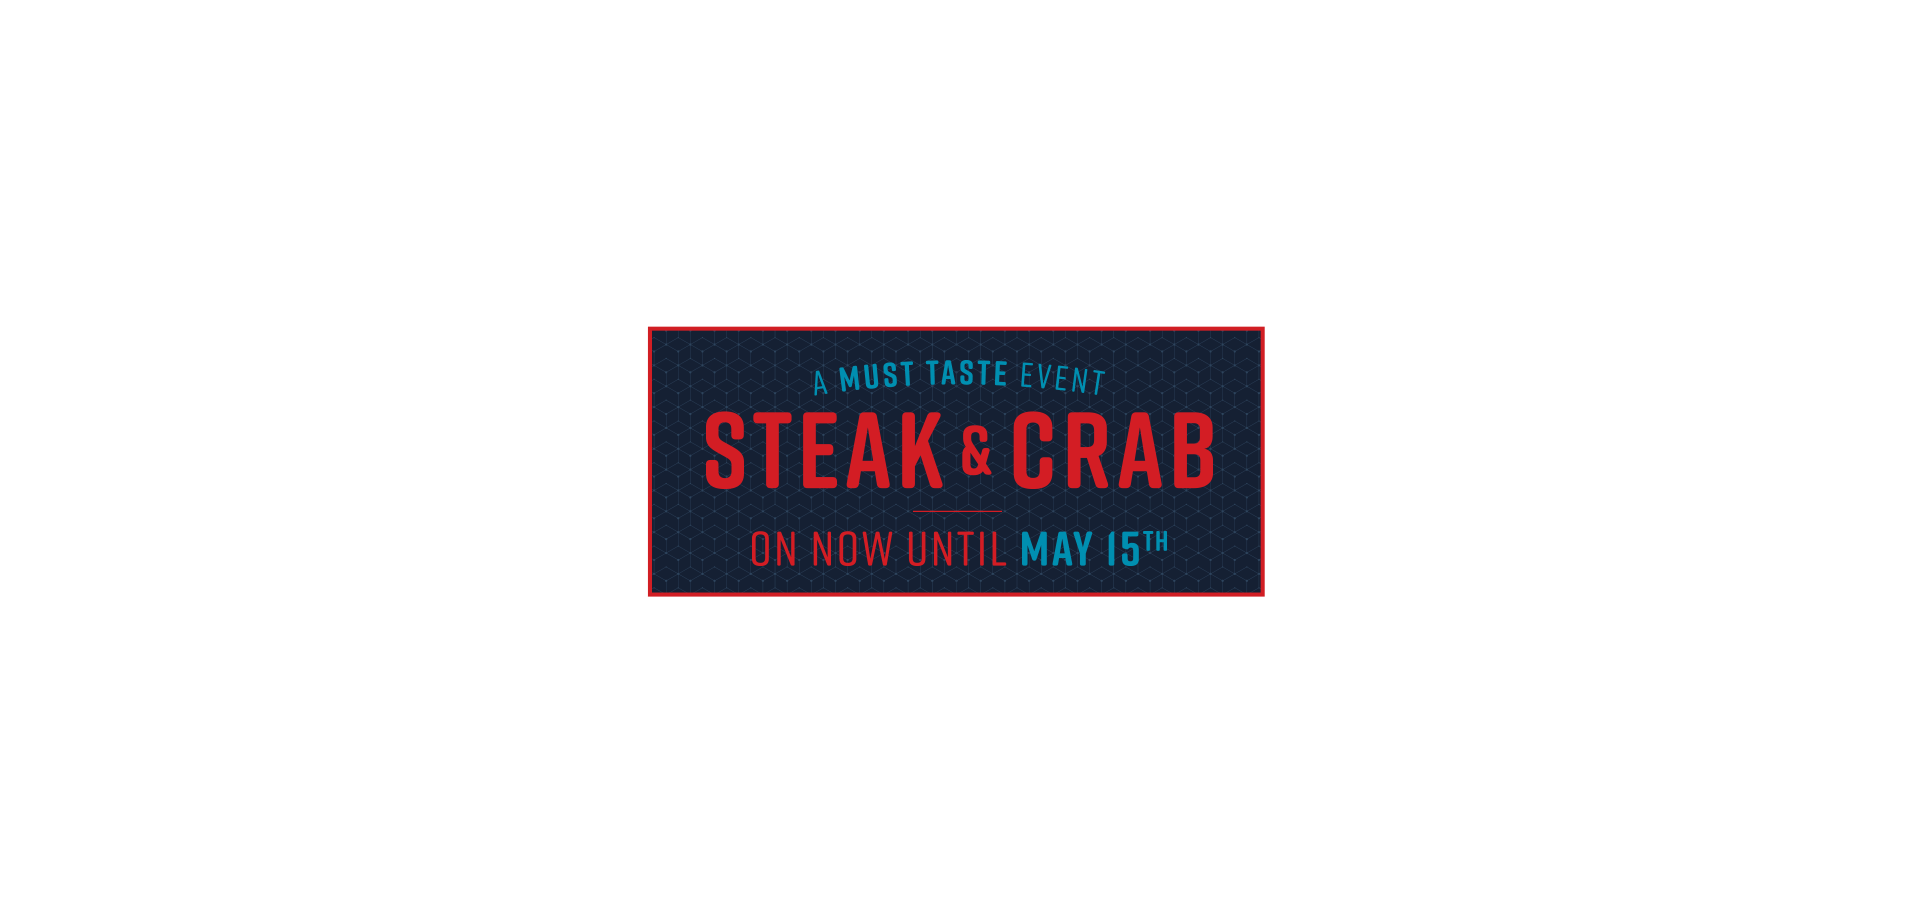 Steak and Crab is Back